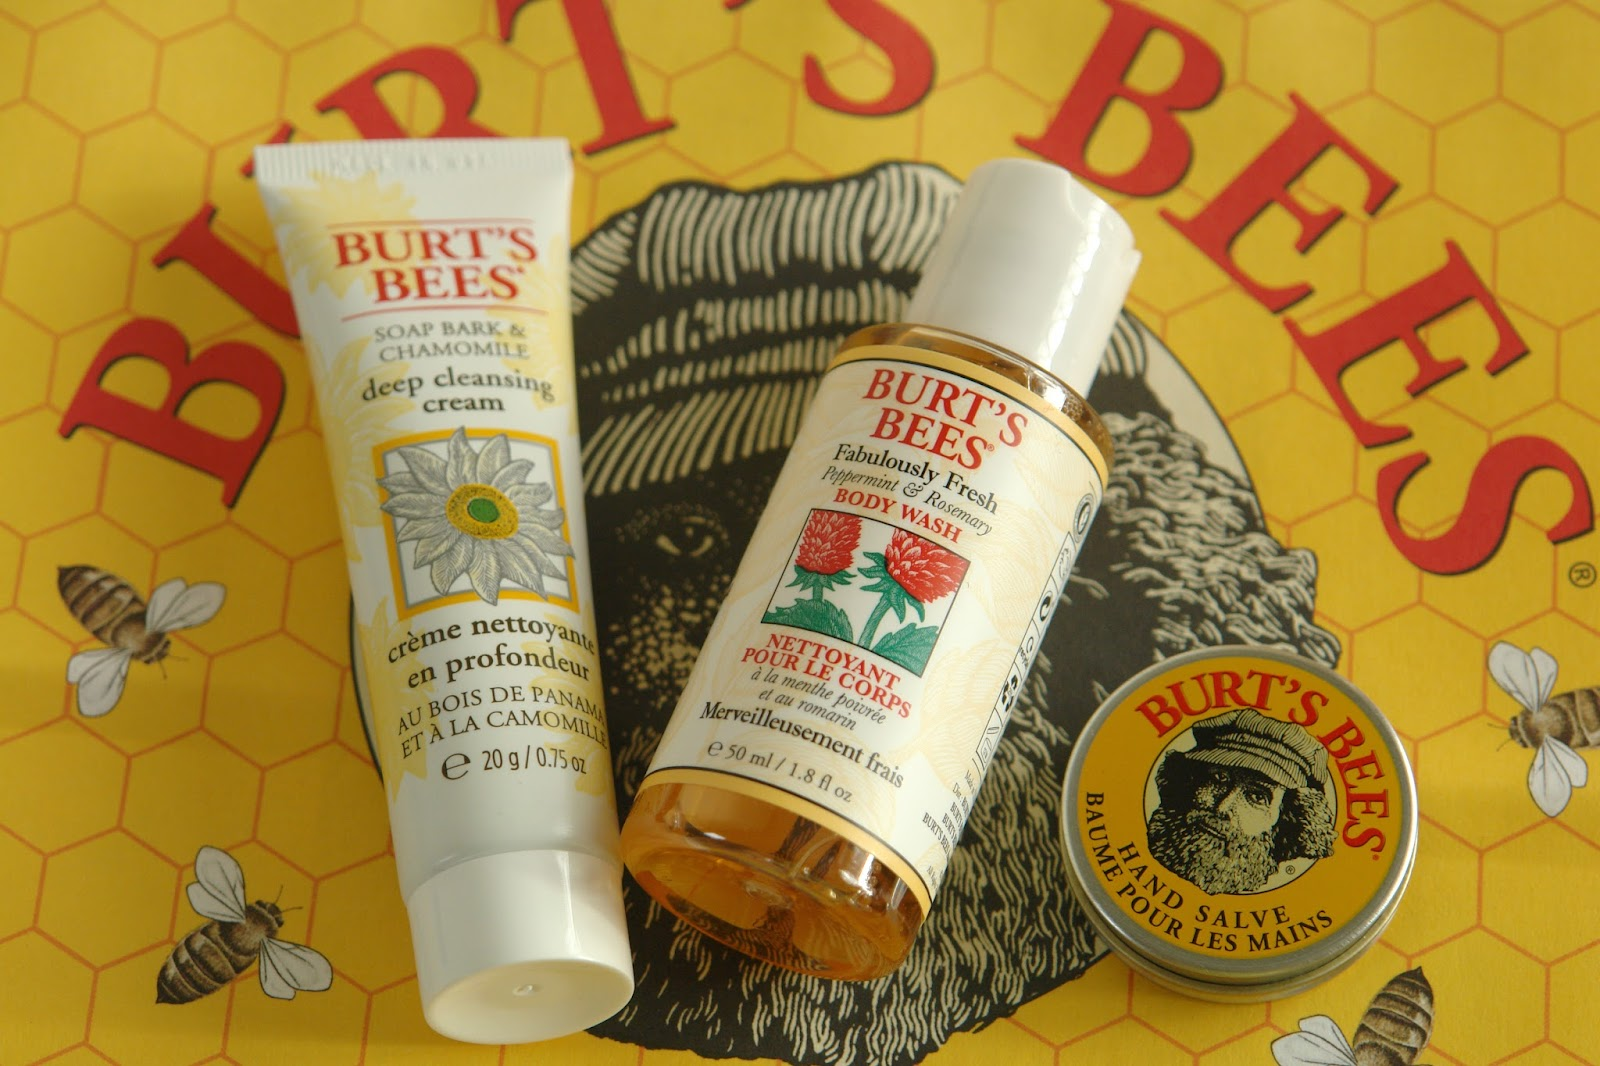 Burt's Bees mini reviews, Burt's Bees Soap Bark & Chamomile Deep Cleansing Cream, Burt's Bees Fabulously Fresh Peppermint & Rosemary Body Wash, Burt's Bees Hand Salve, blogger, review, Burt's Bees 'Hive' pop up store in Seven Dials